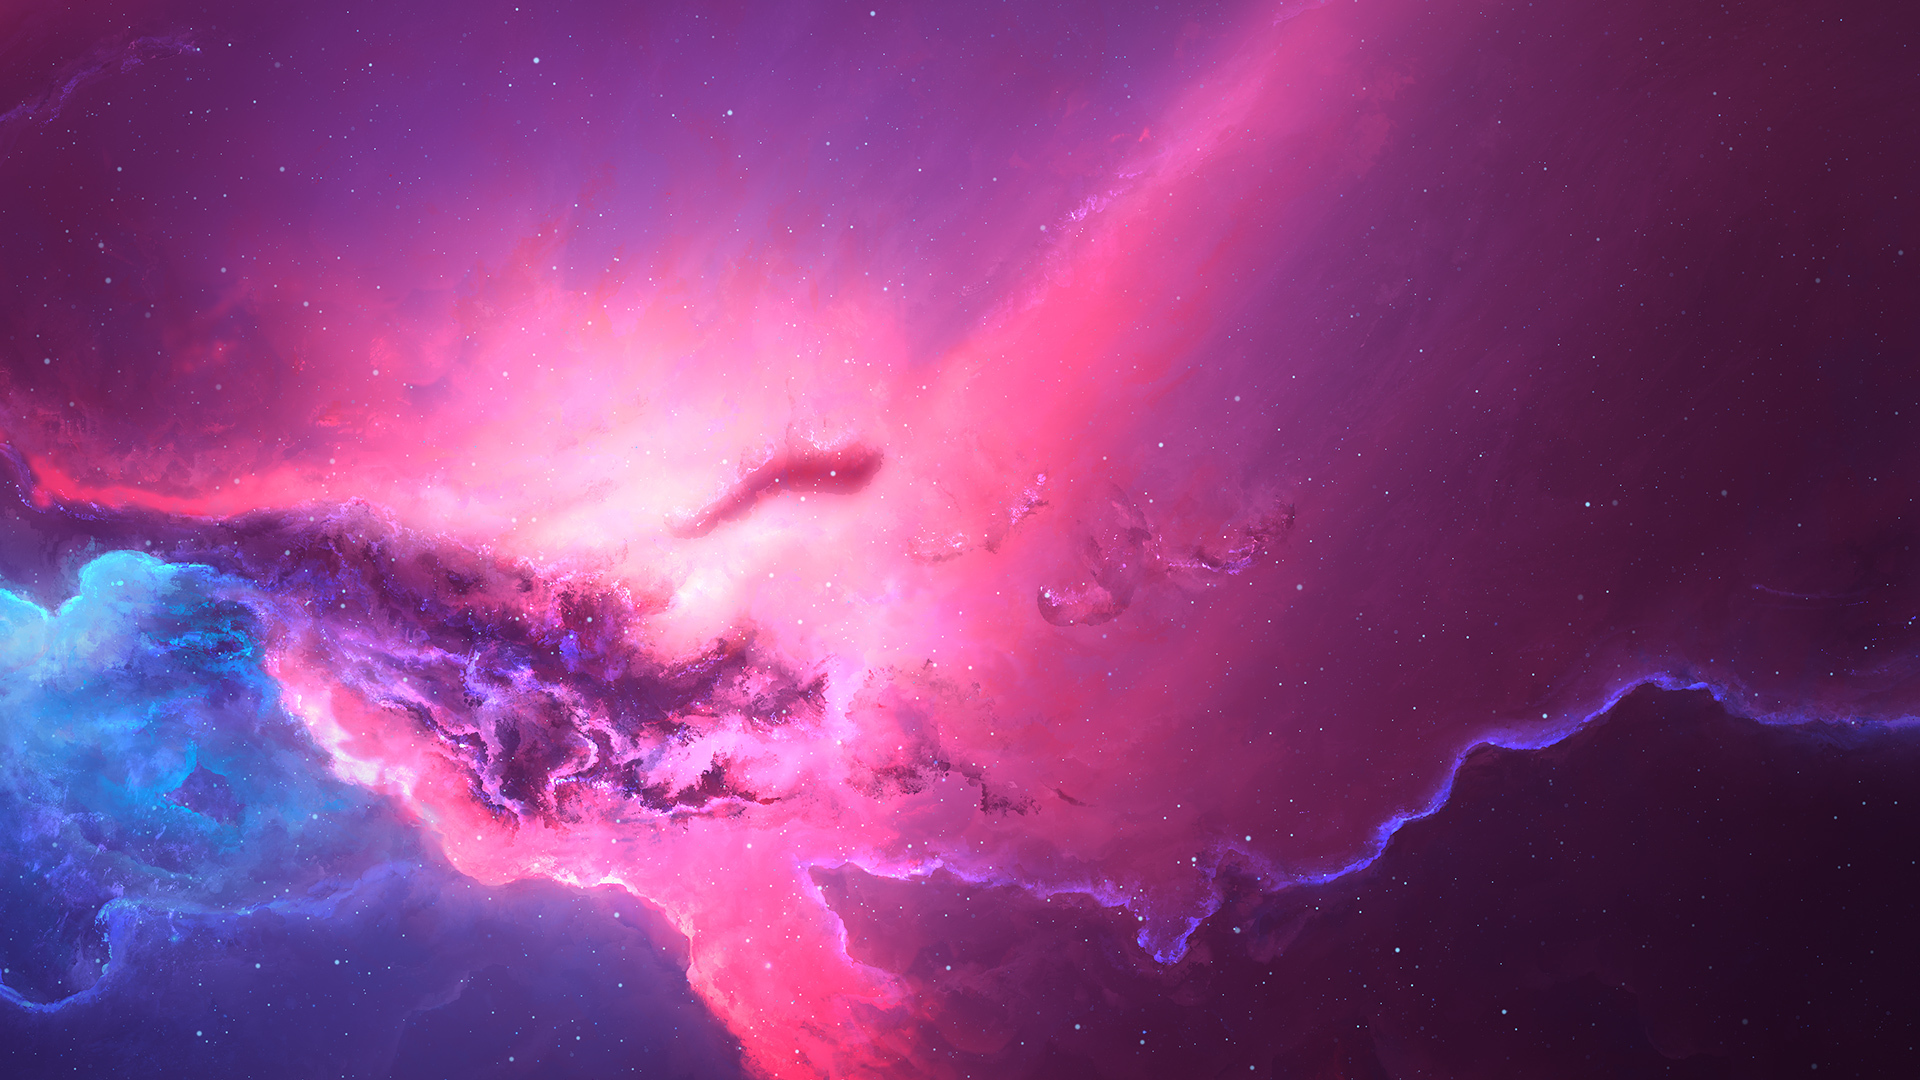 1920x1080 pink red nebula space cosmos 4k laptop full hd - Pink space wallpaper ...